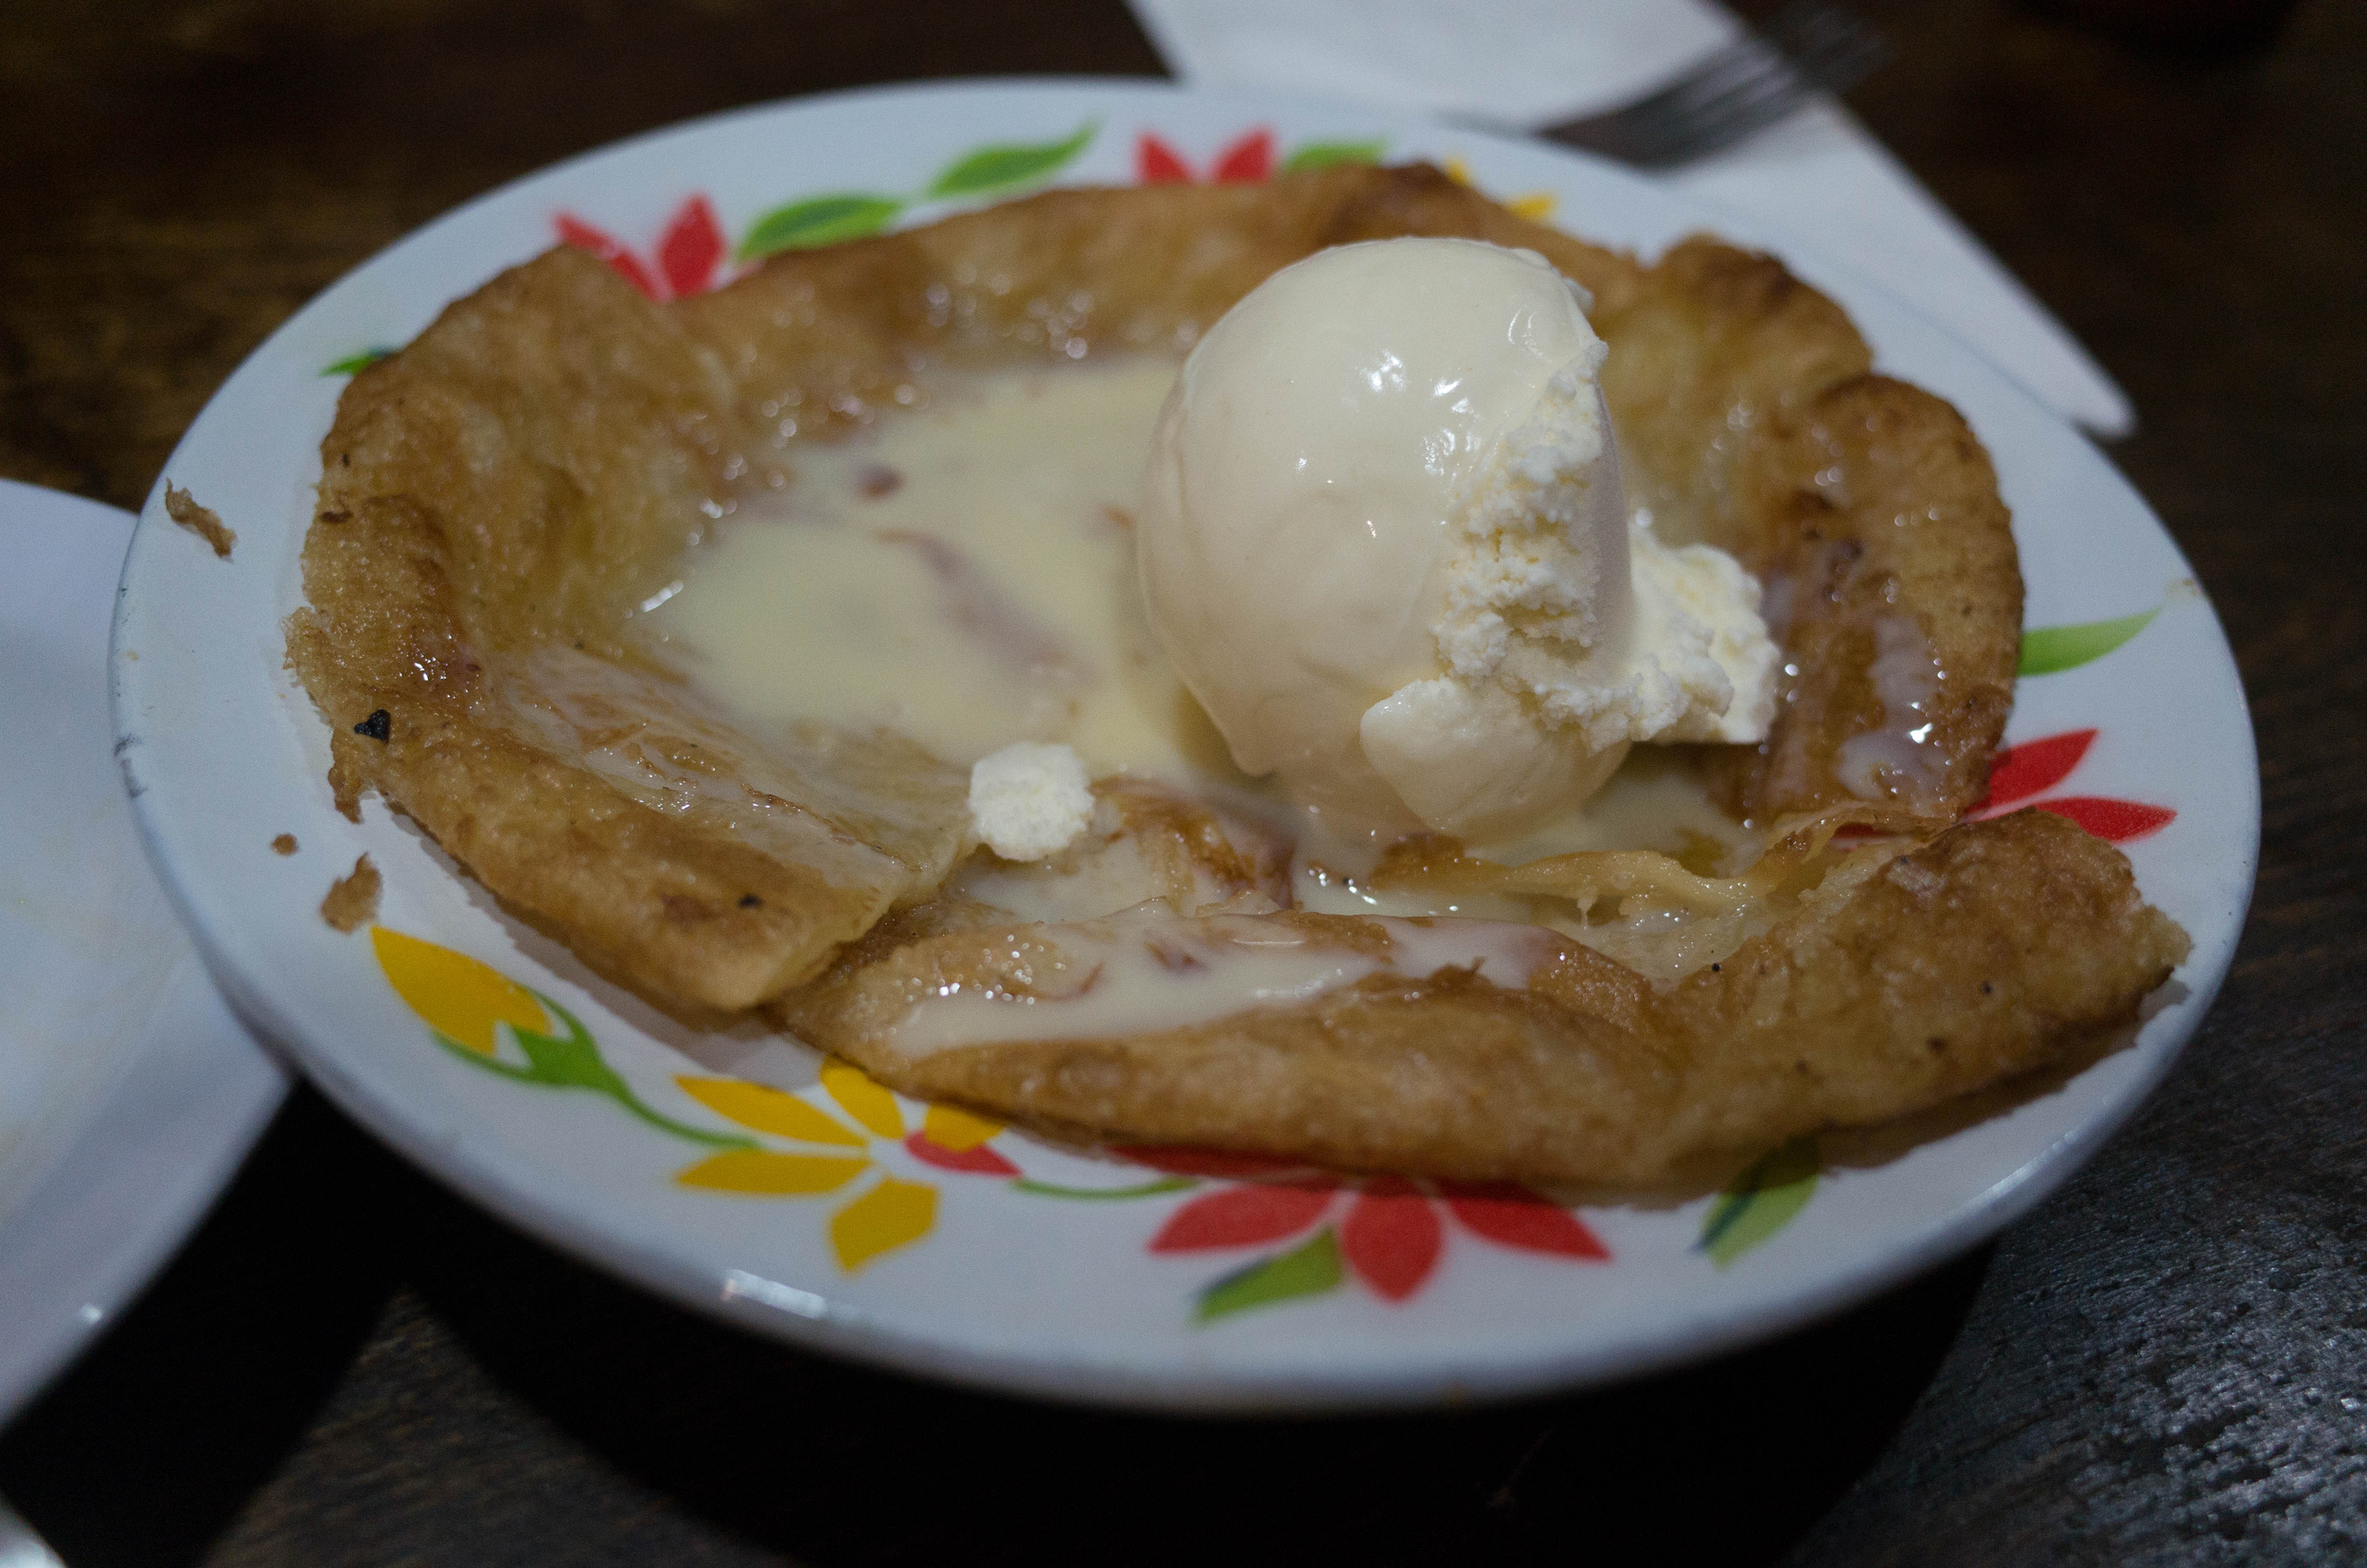 Roti with condensed milk and ice cream, one last unexpected stunner of a dish. We almost got in a fist fight over the last bites.